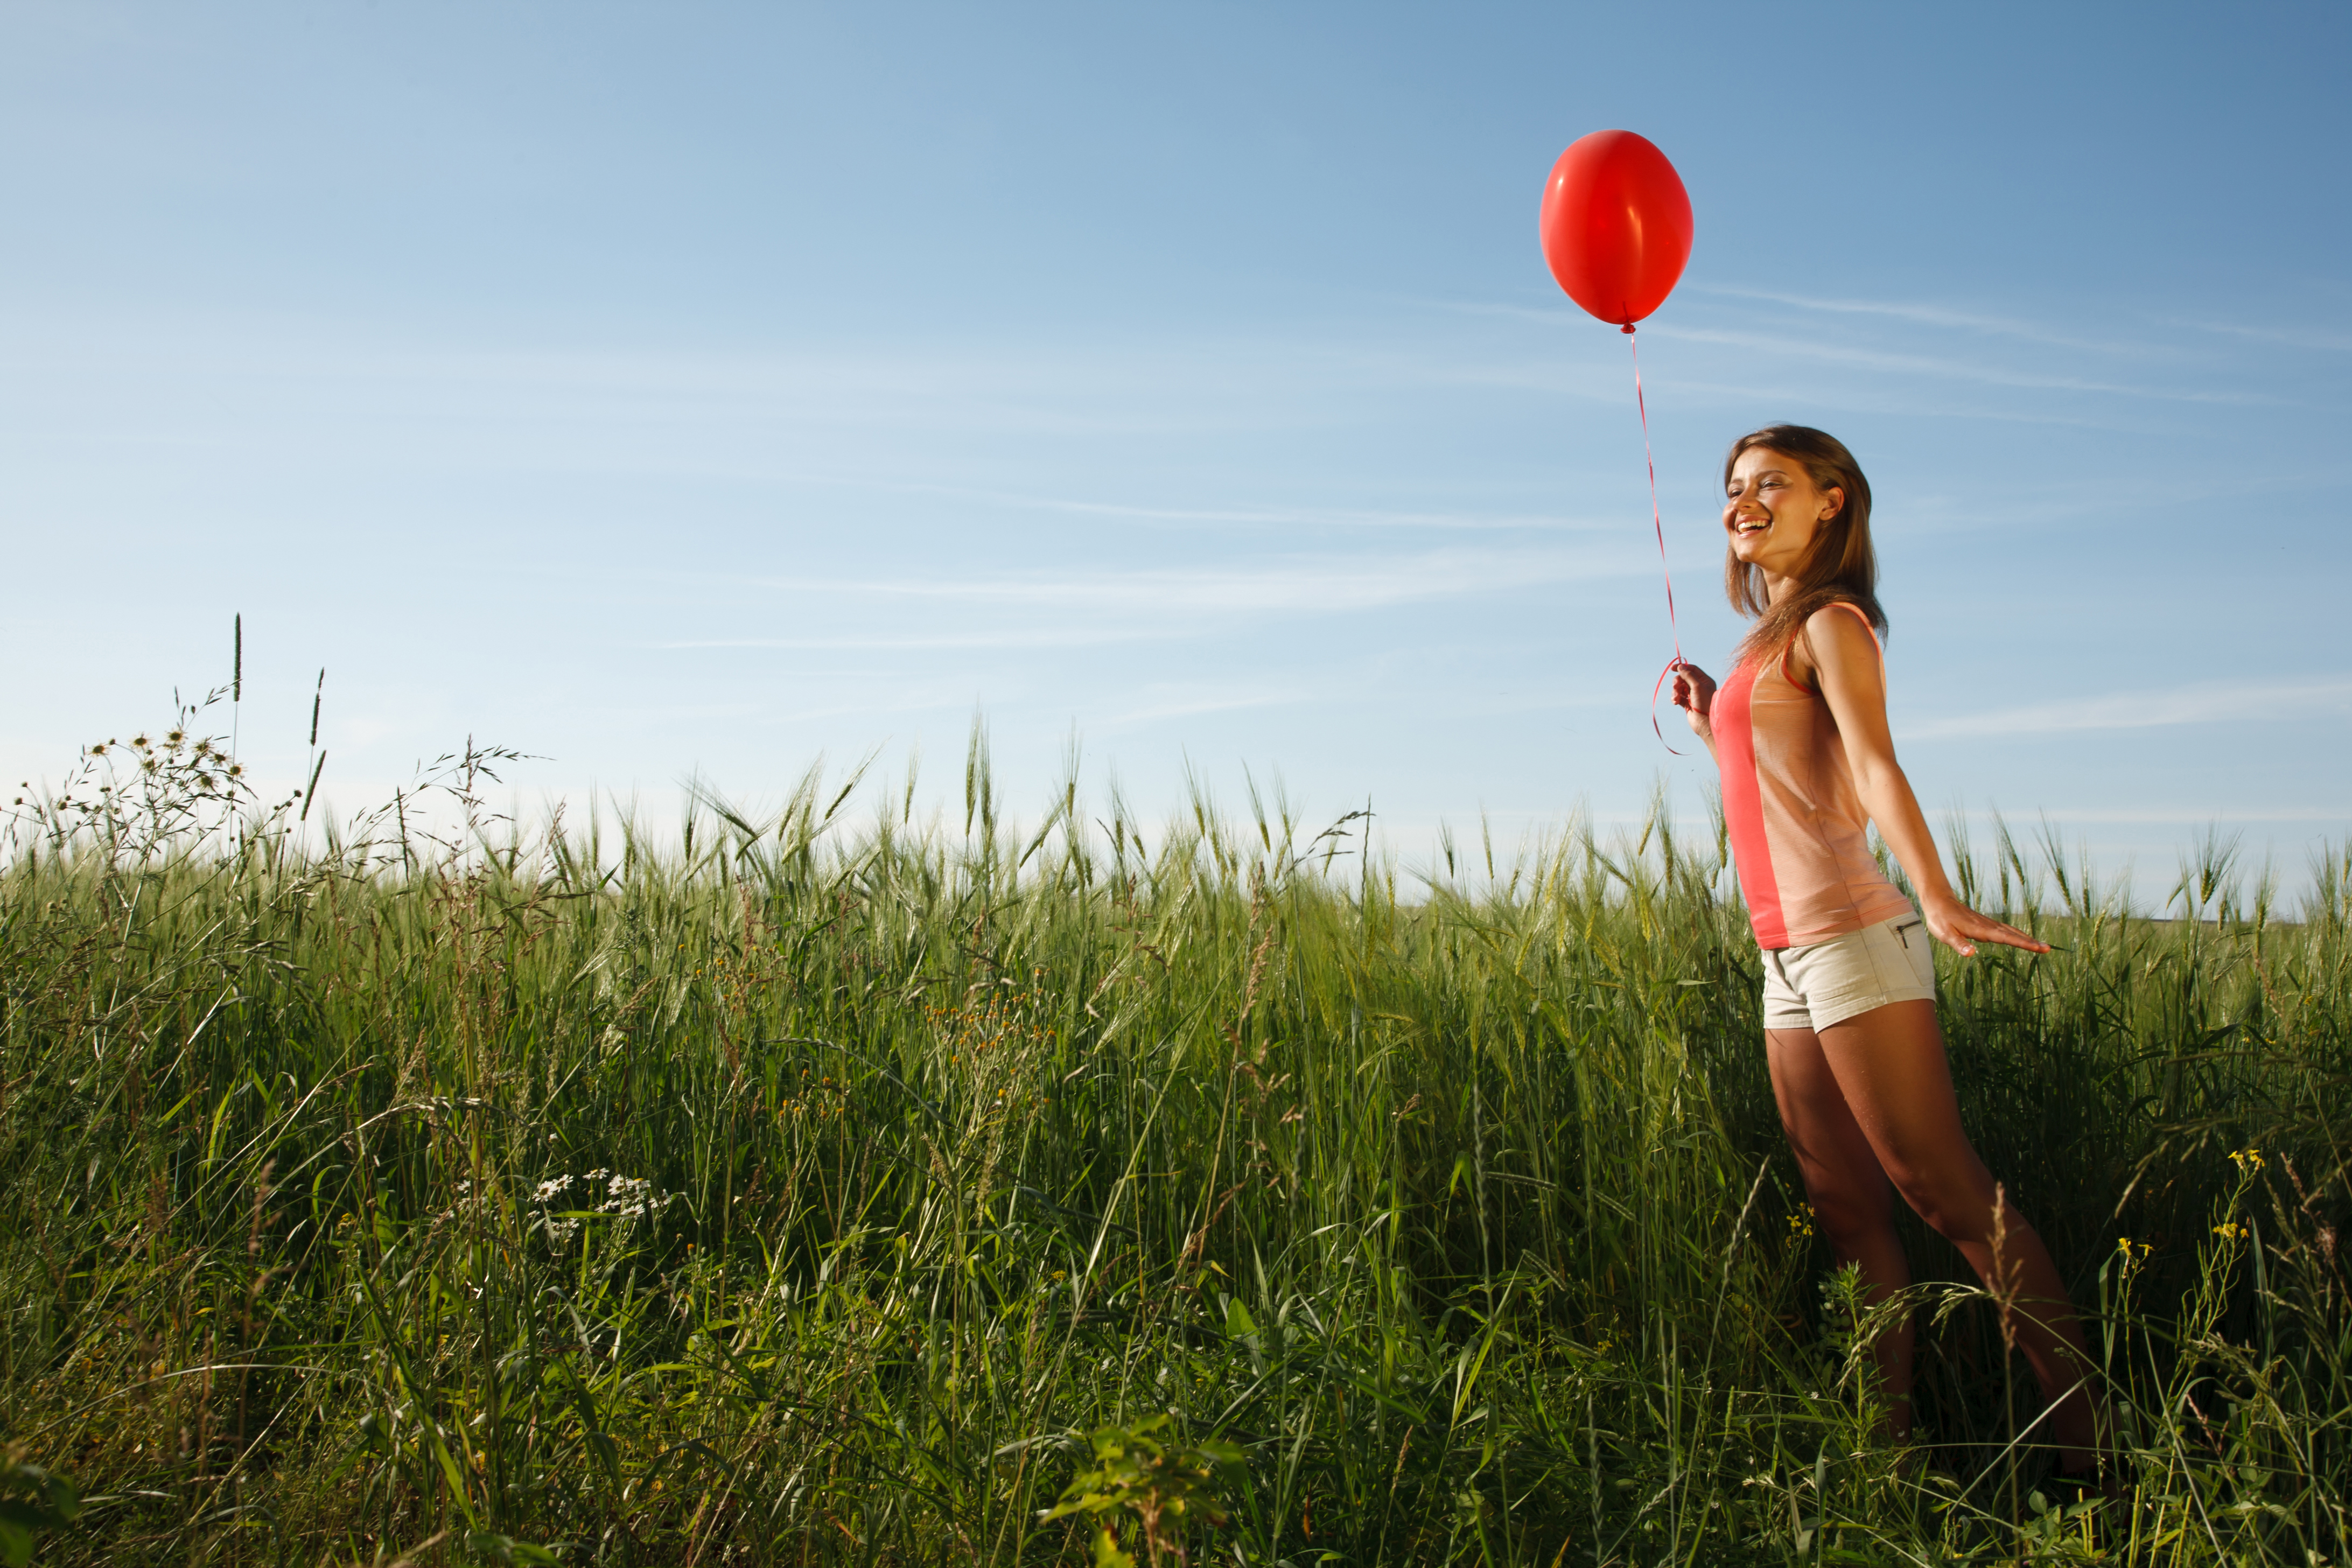 Girl with the red balloon stands on the field